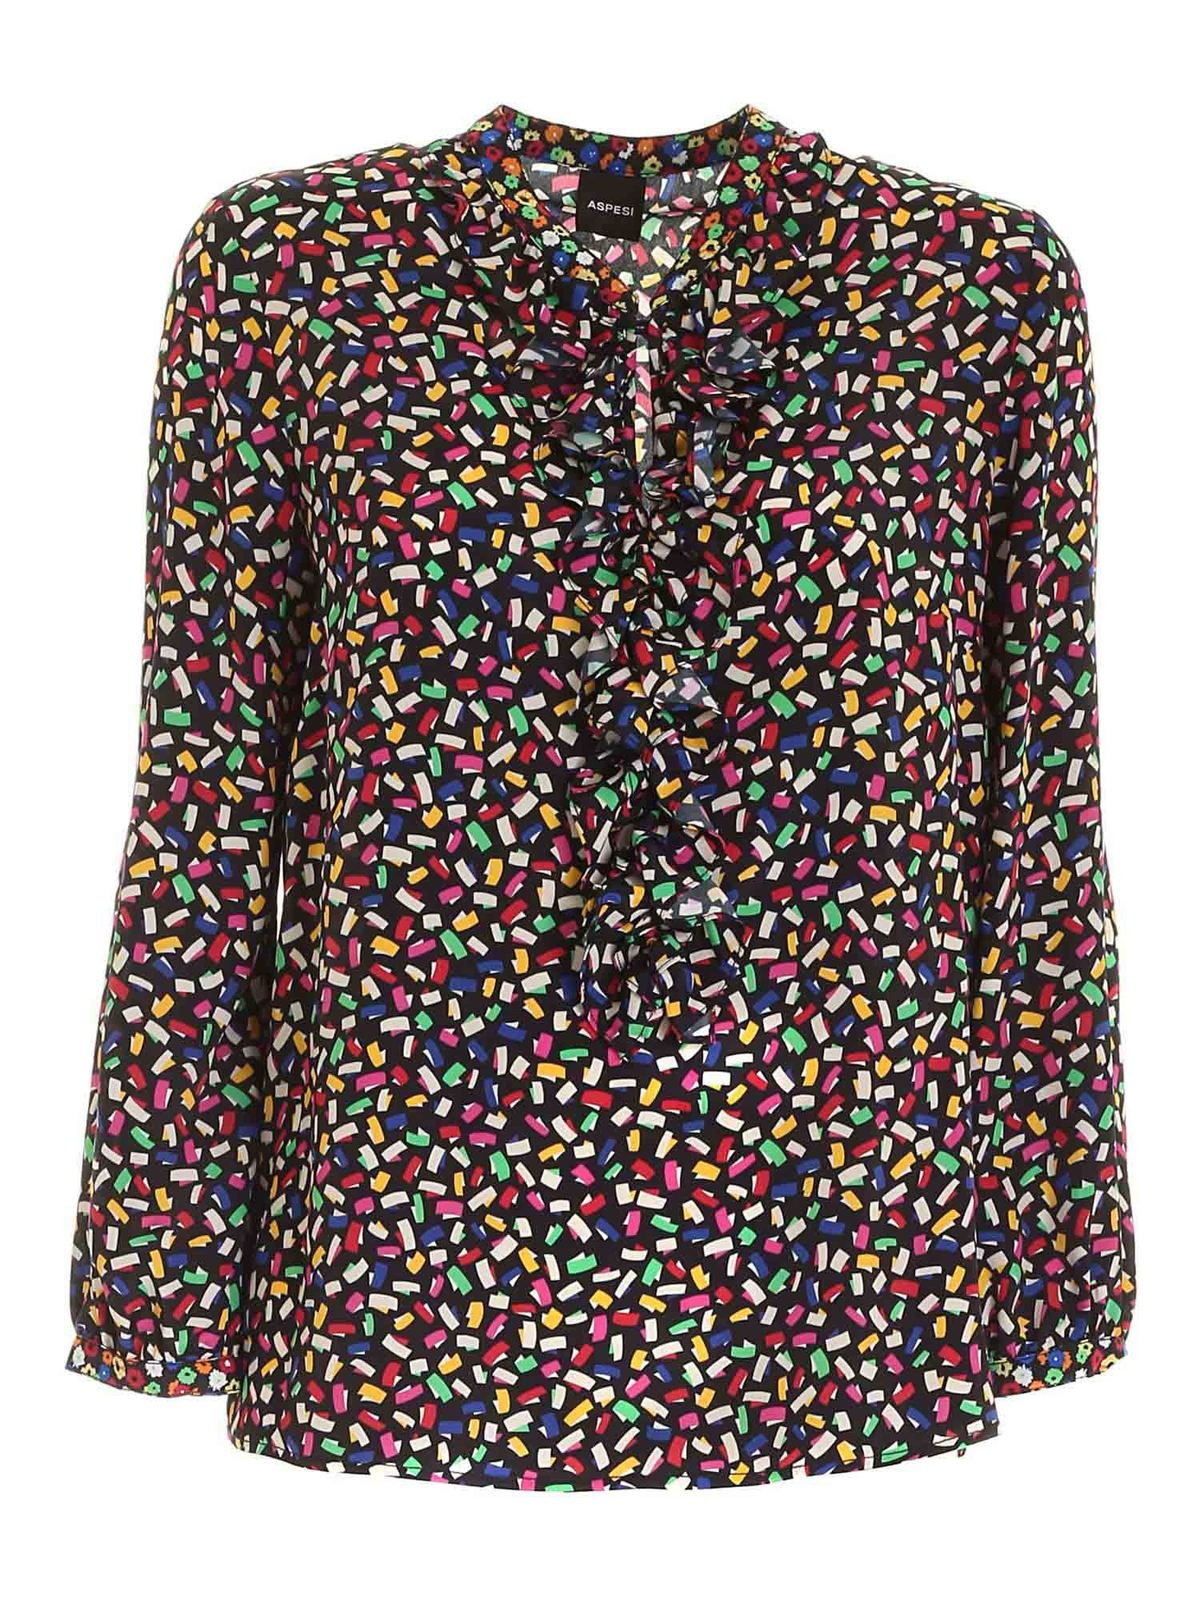 Aspesi MULTICOLOR PATTERN SHIRT IN BLACK